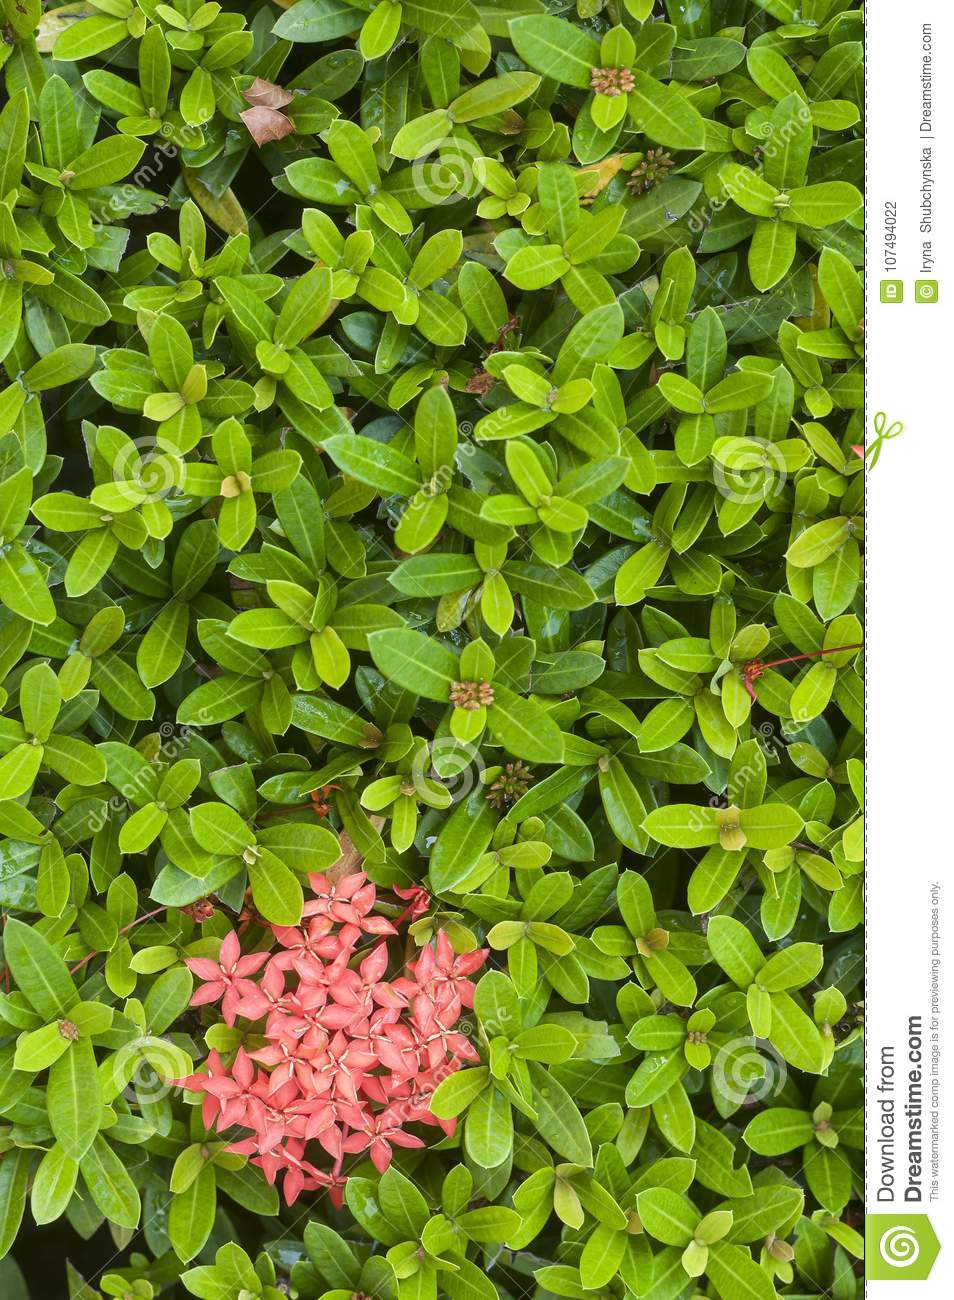 Fresh Green Small Leaves Of A Tropical Plant With Pink Flowers Stock